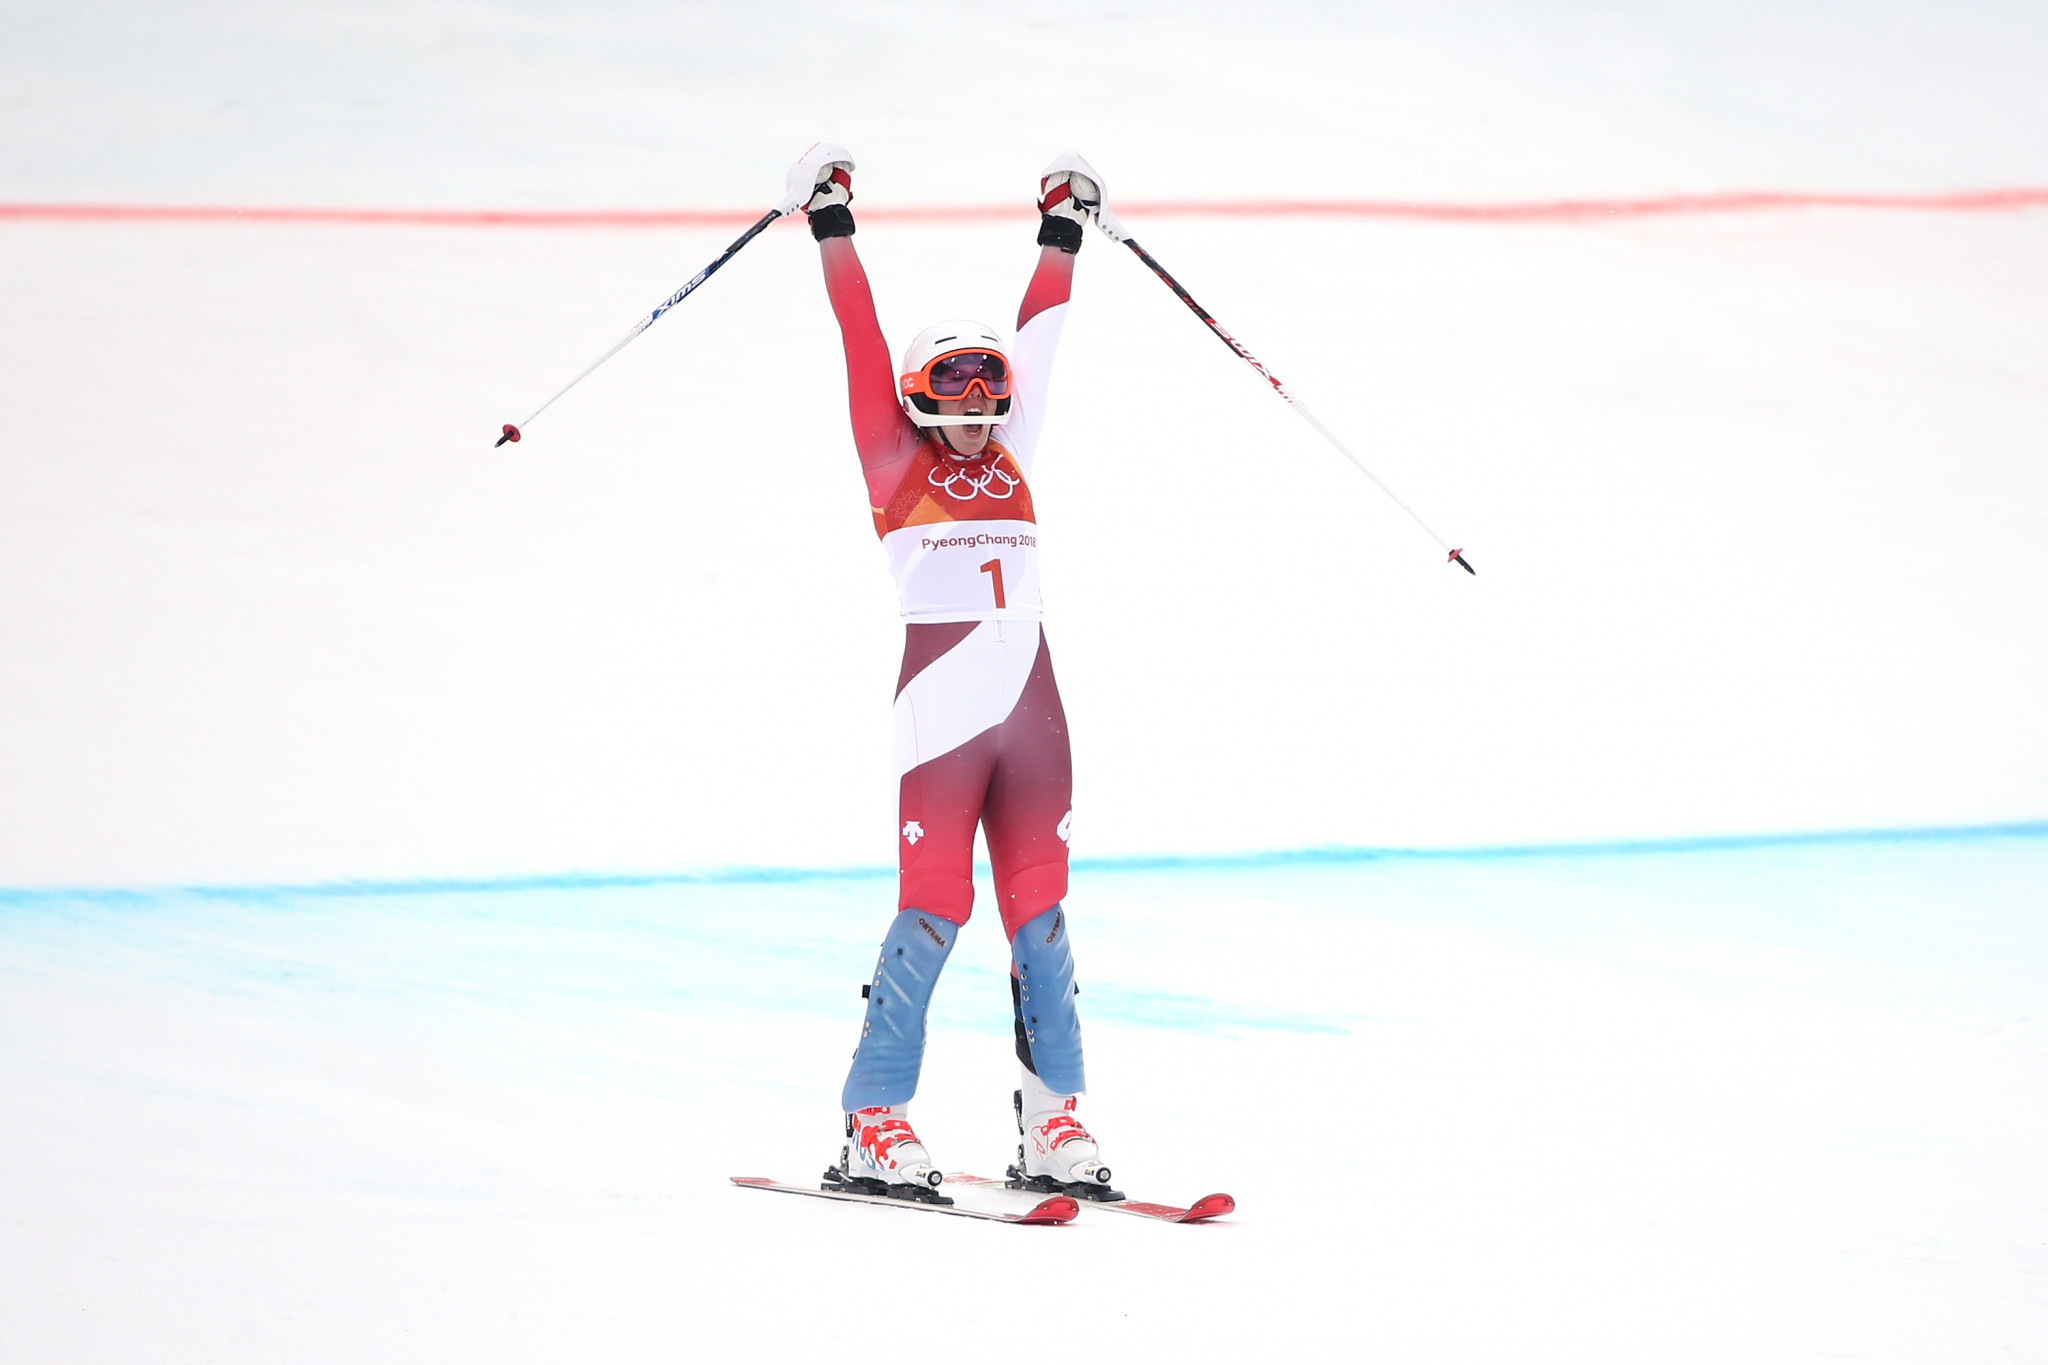 Gisin holds off Shiffrin to claim women's Alpine combined gold at Pyeongchang 2018